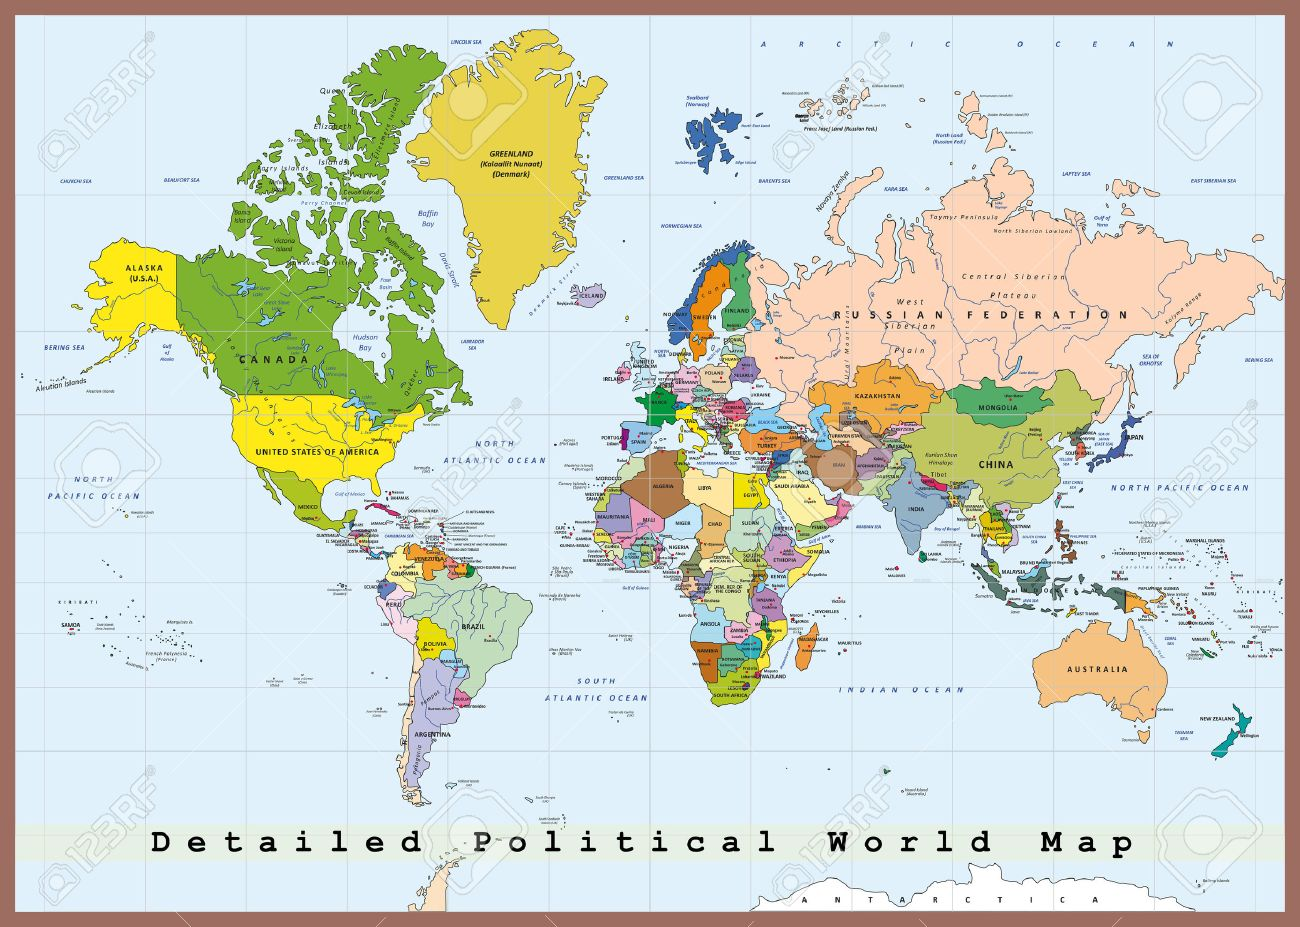 carte-des-capitales-du-monde - Photo